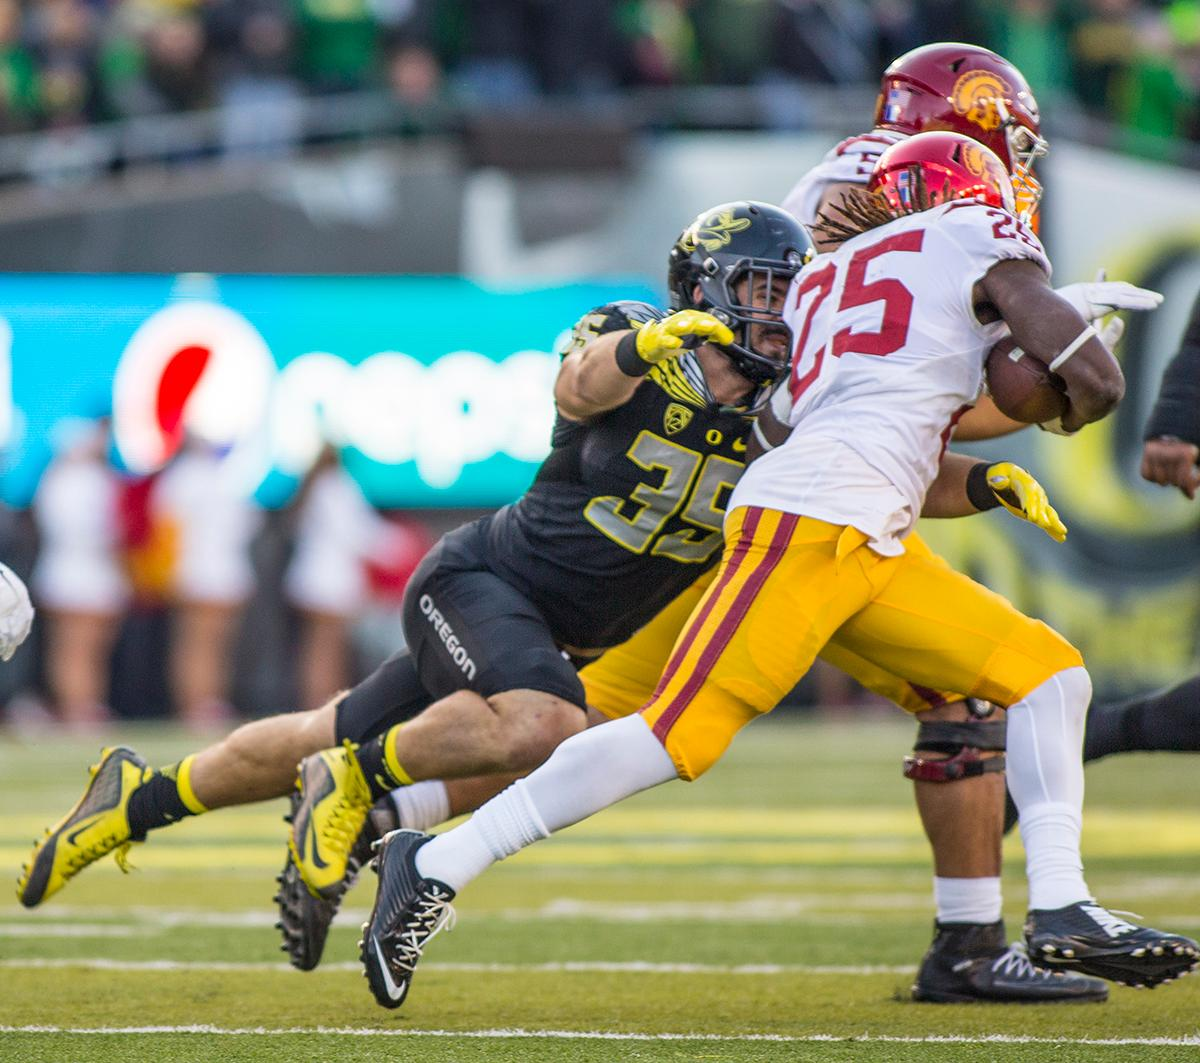 Oregon Ducks' linebacker, Joe Walker (#35) lunges after USC Trojans' tail back, Ronald Jones II (#25). The Ducks beat the Trojans 48-28. Kianna Cabuco, Oregon News Lab